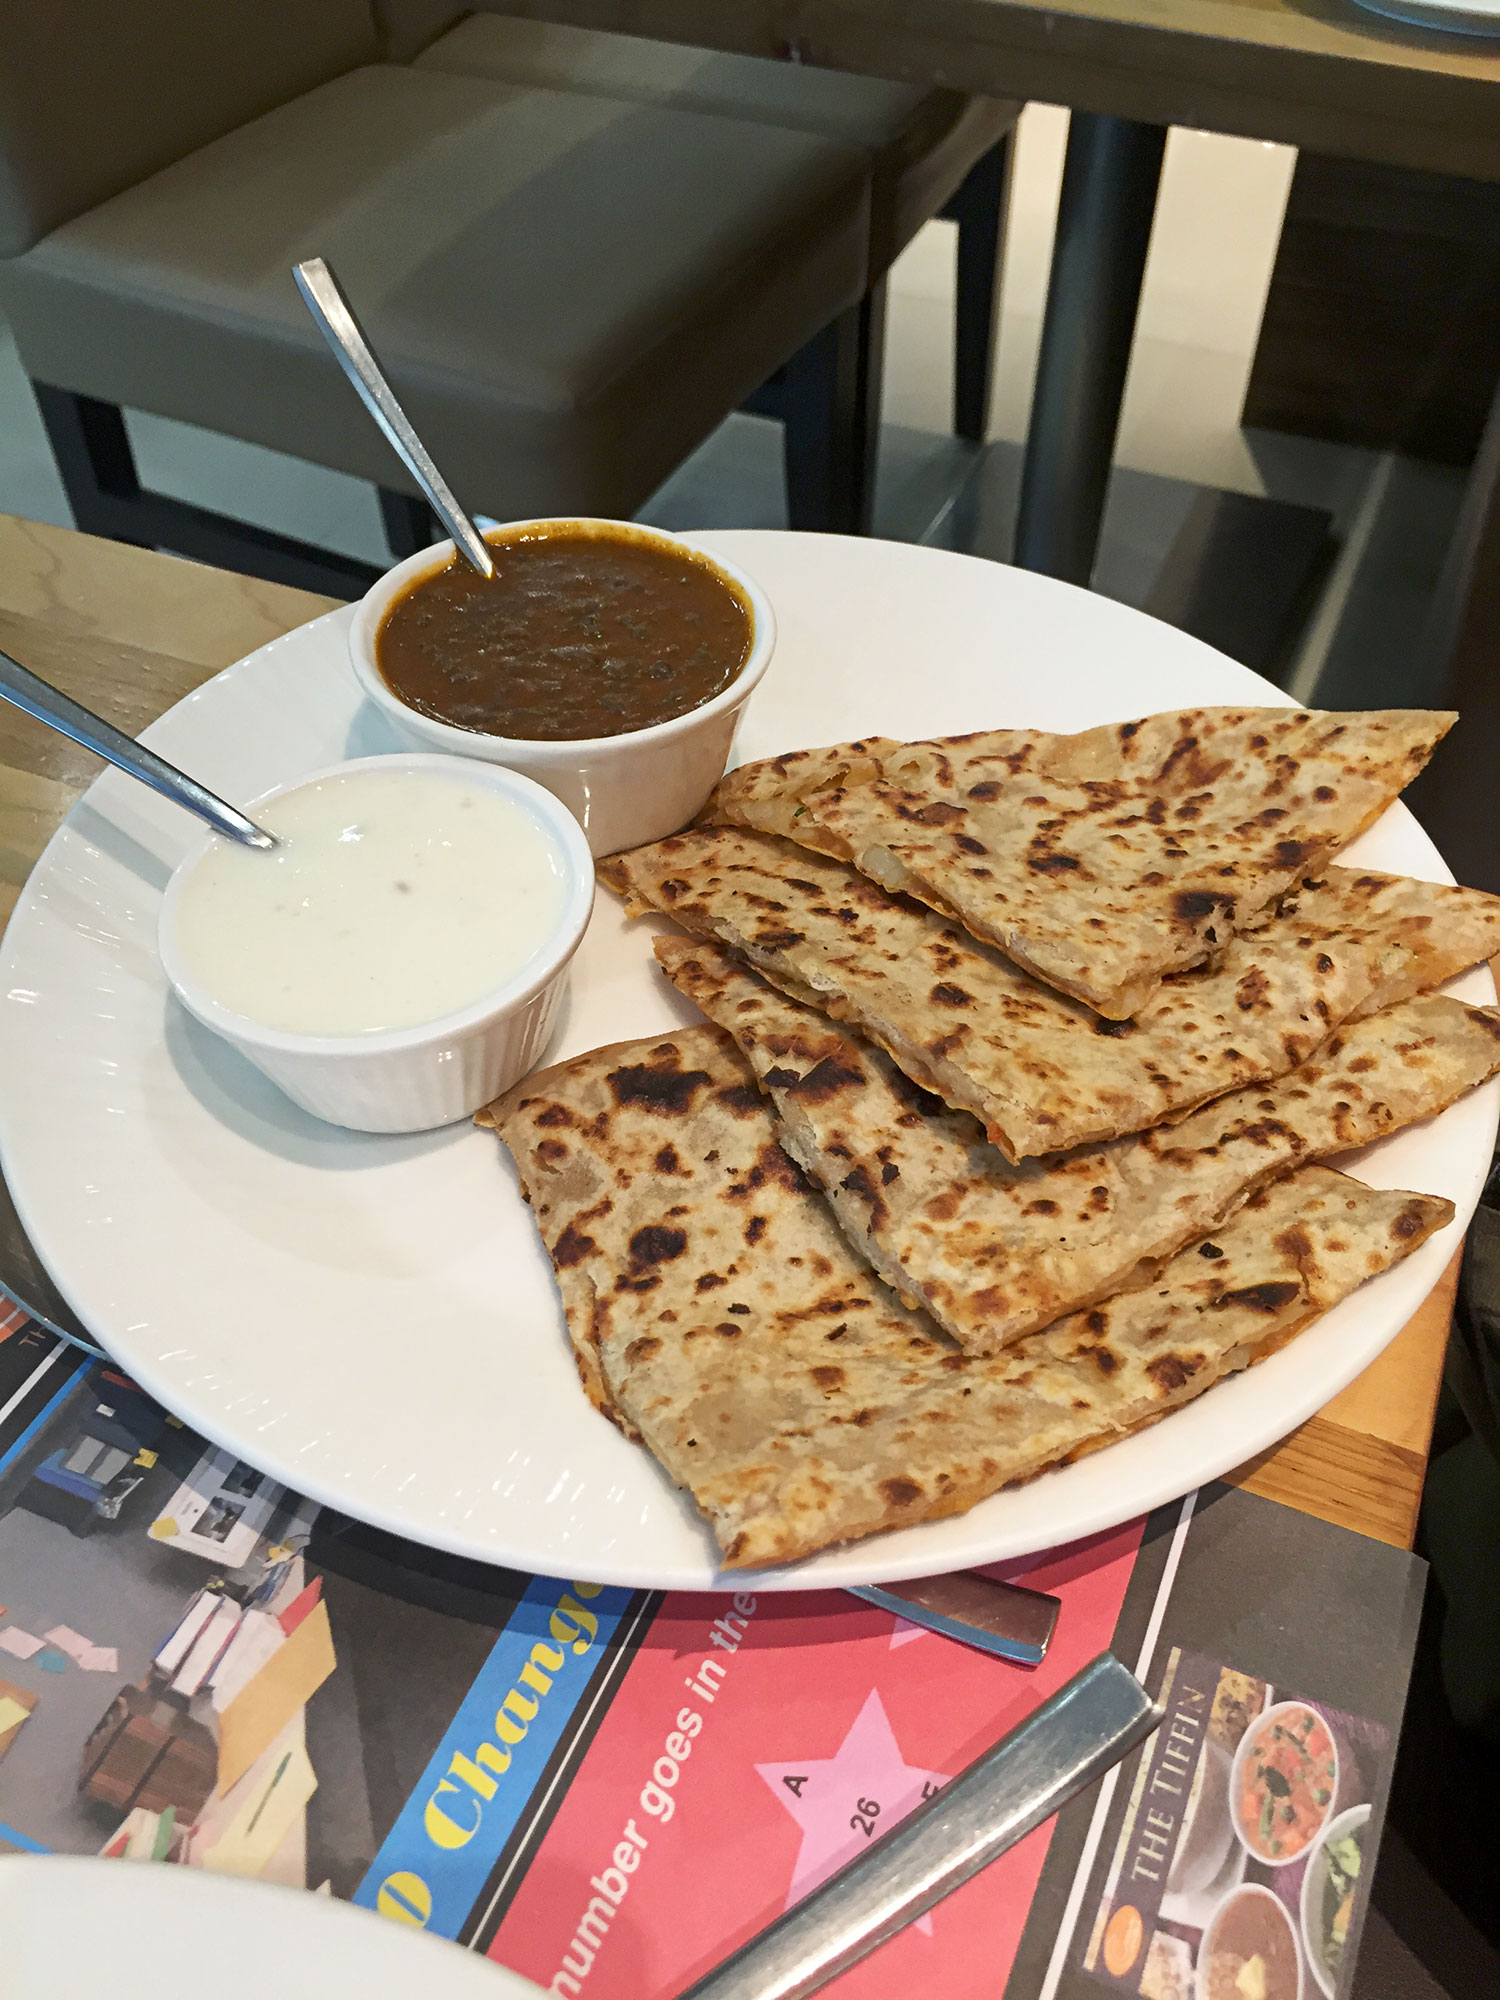 Stuffed paratha.  I think it was stuffed with paneer.